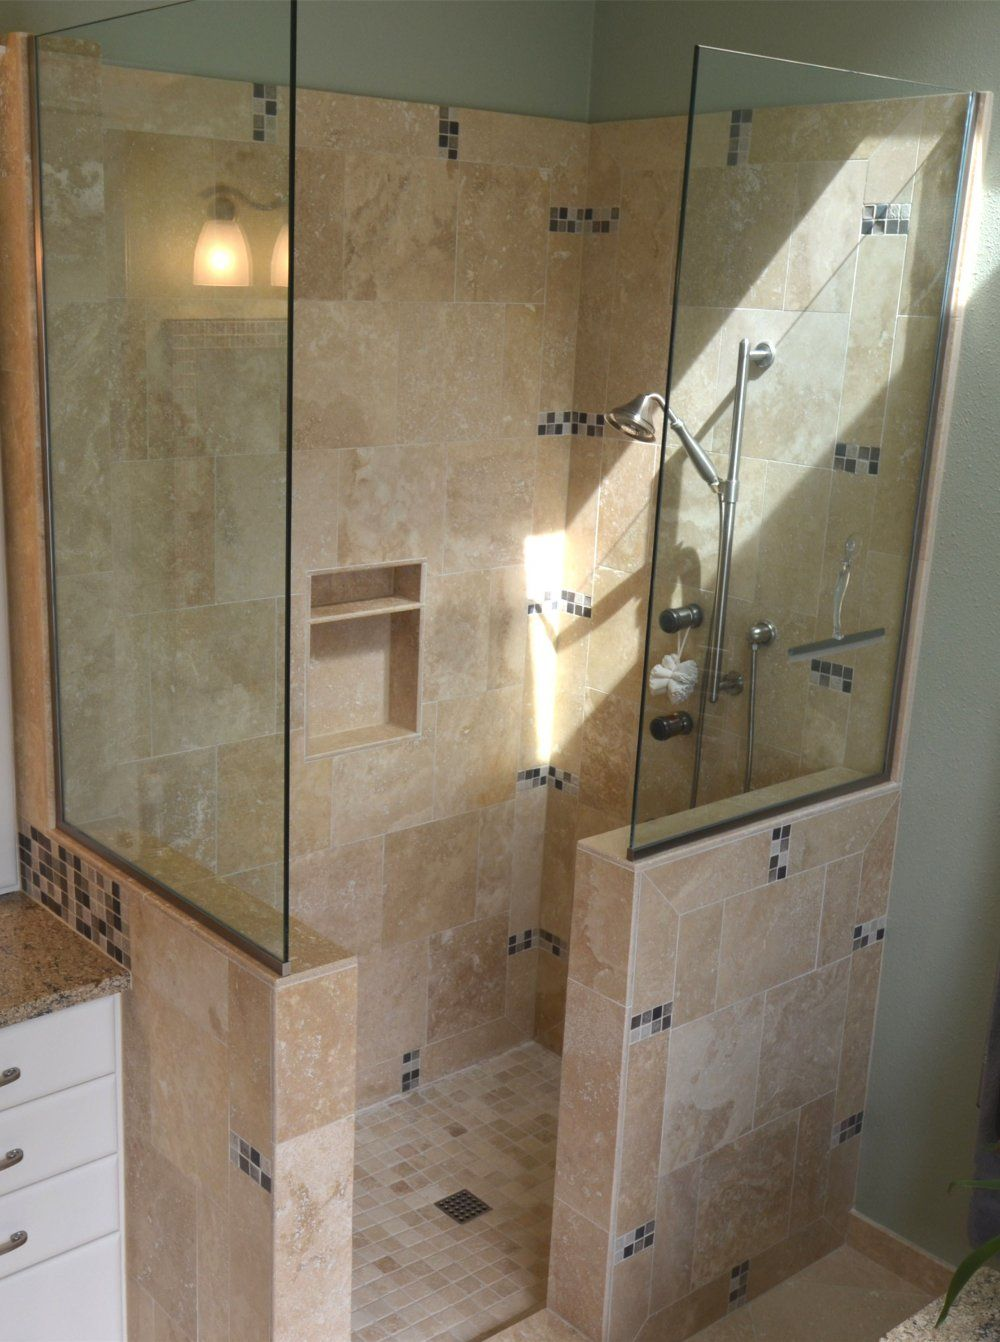 Bathroom doorless shower ideas - Pros And Cons Of Having Doorless Shower On Your Home